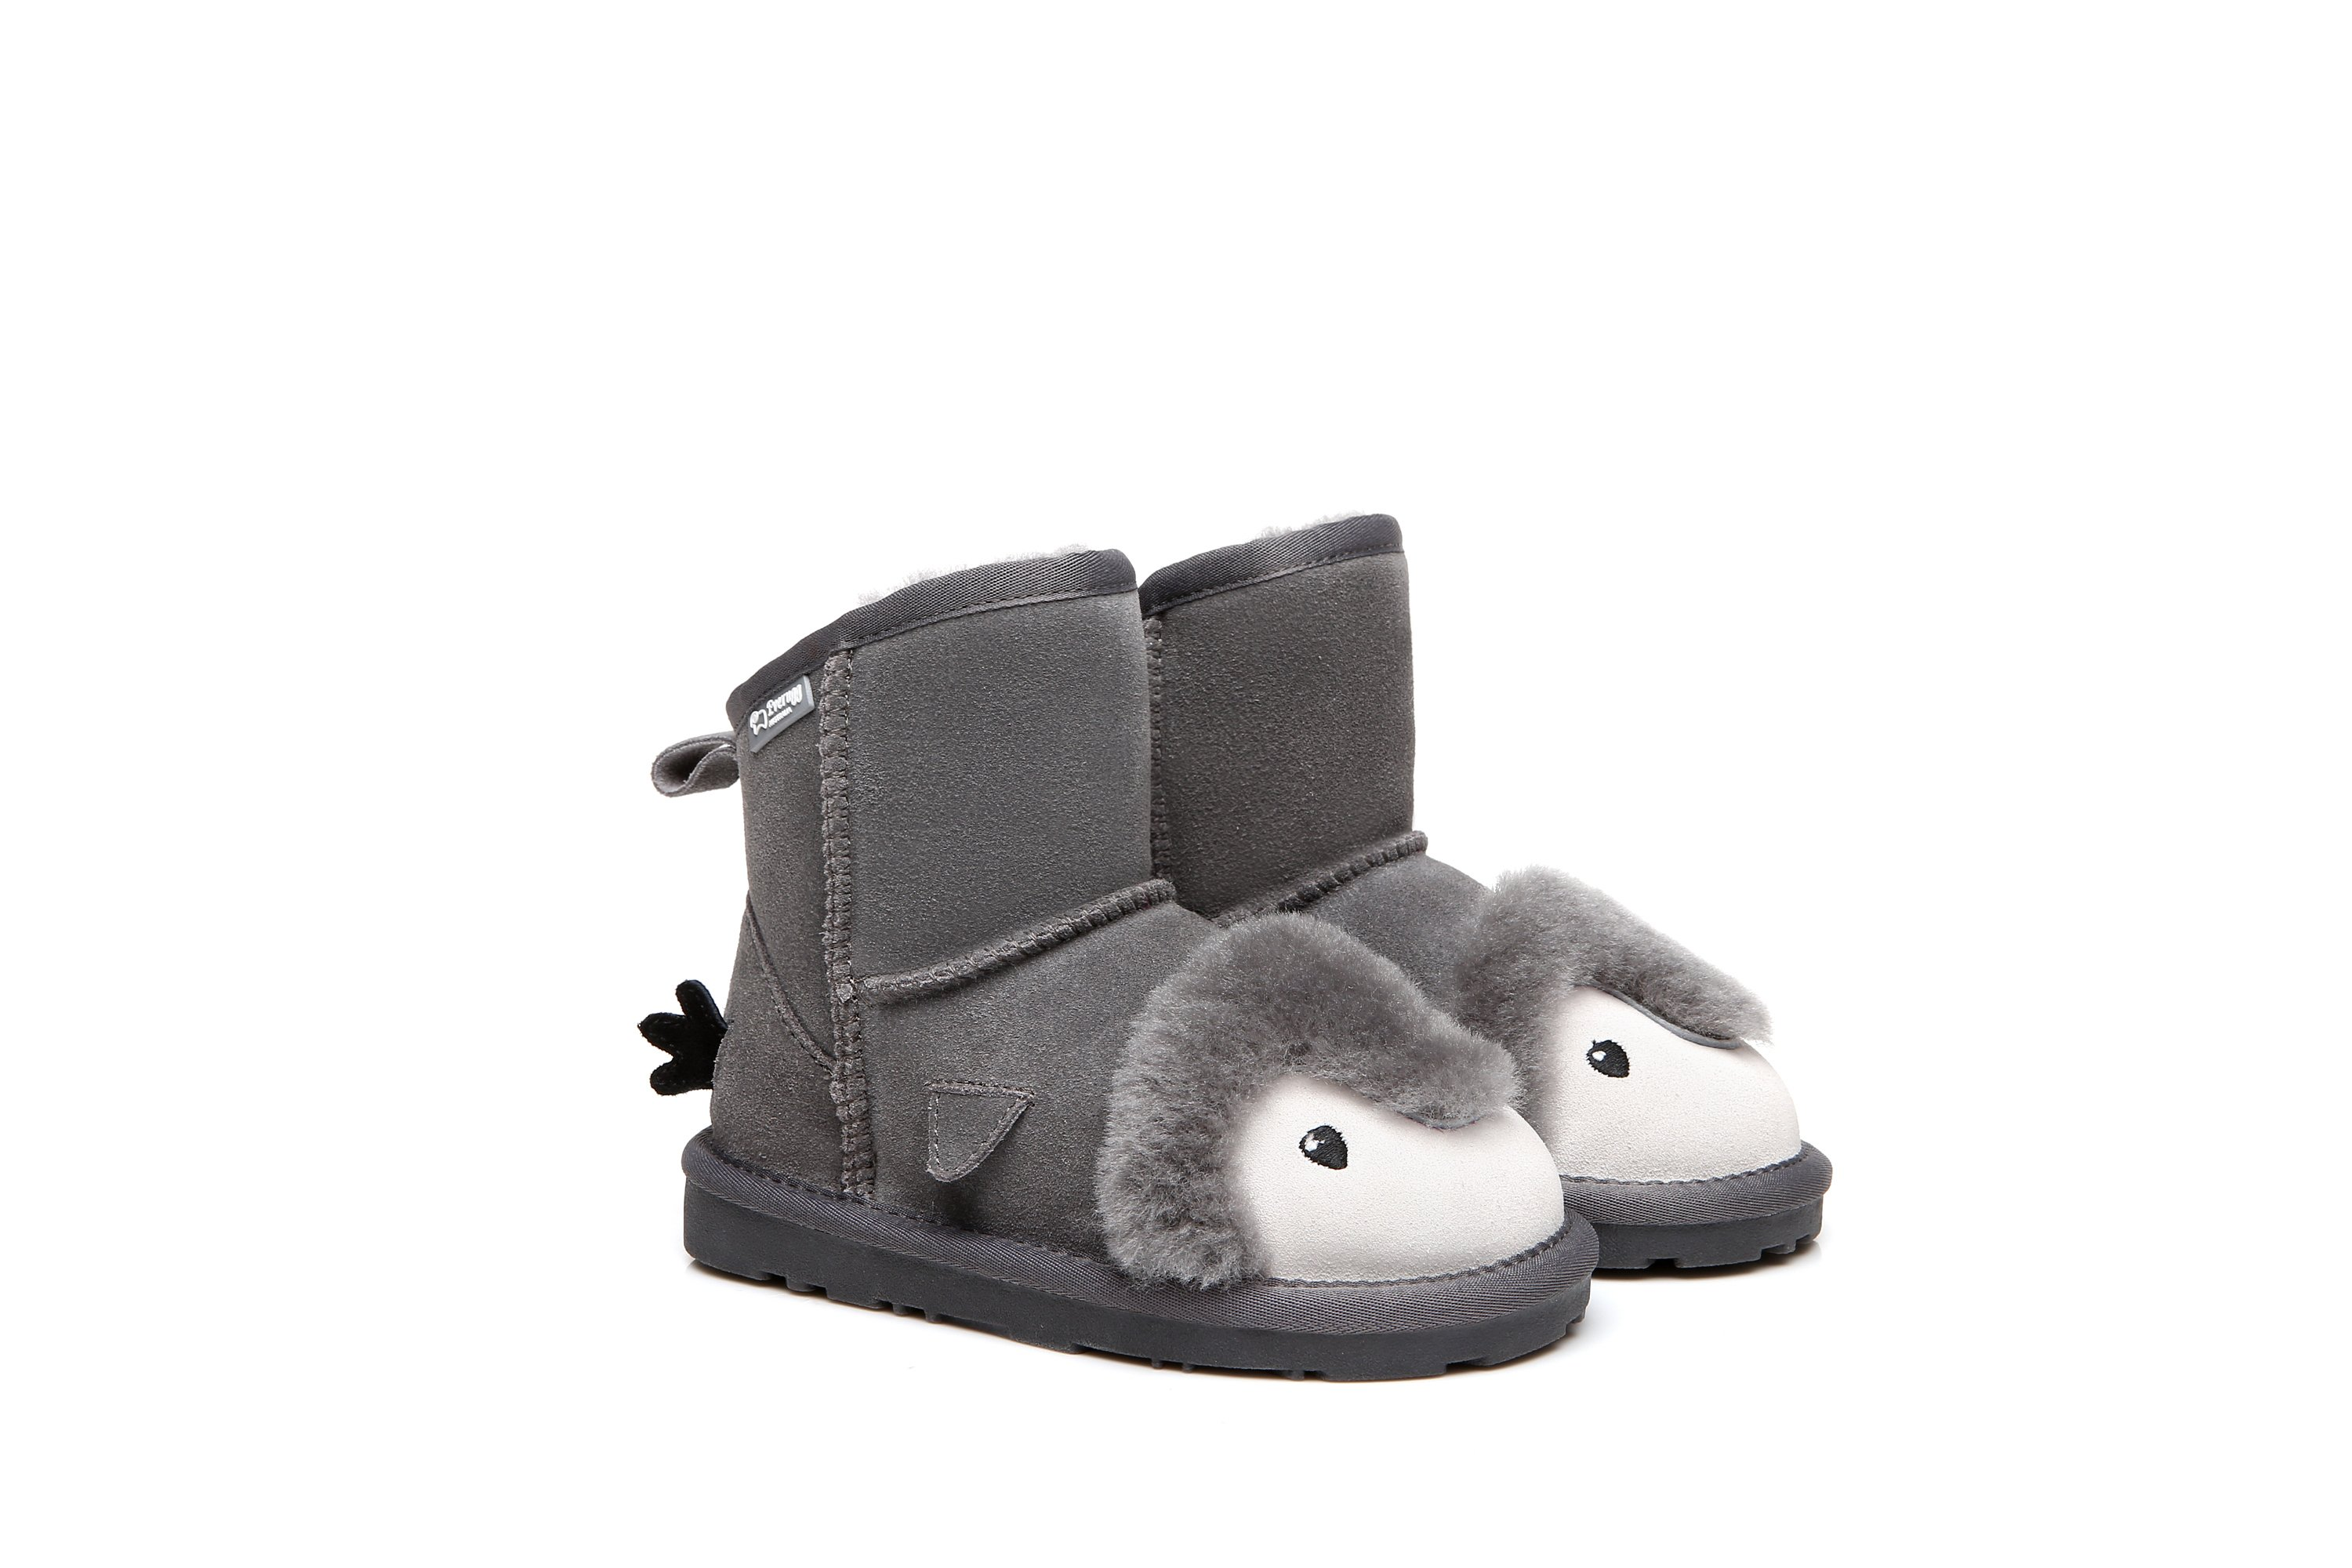 91f2cd6c86e1 Image of UGG Kids Boots Penguin - Cowhide Upper Australian Sheepskin Lining  Water Resistant